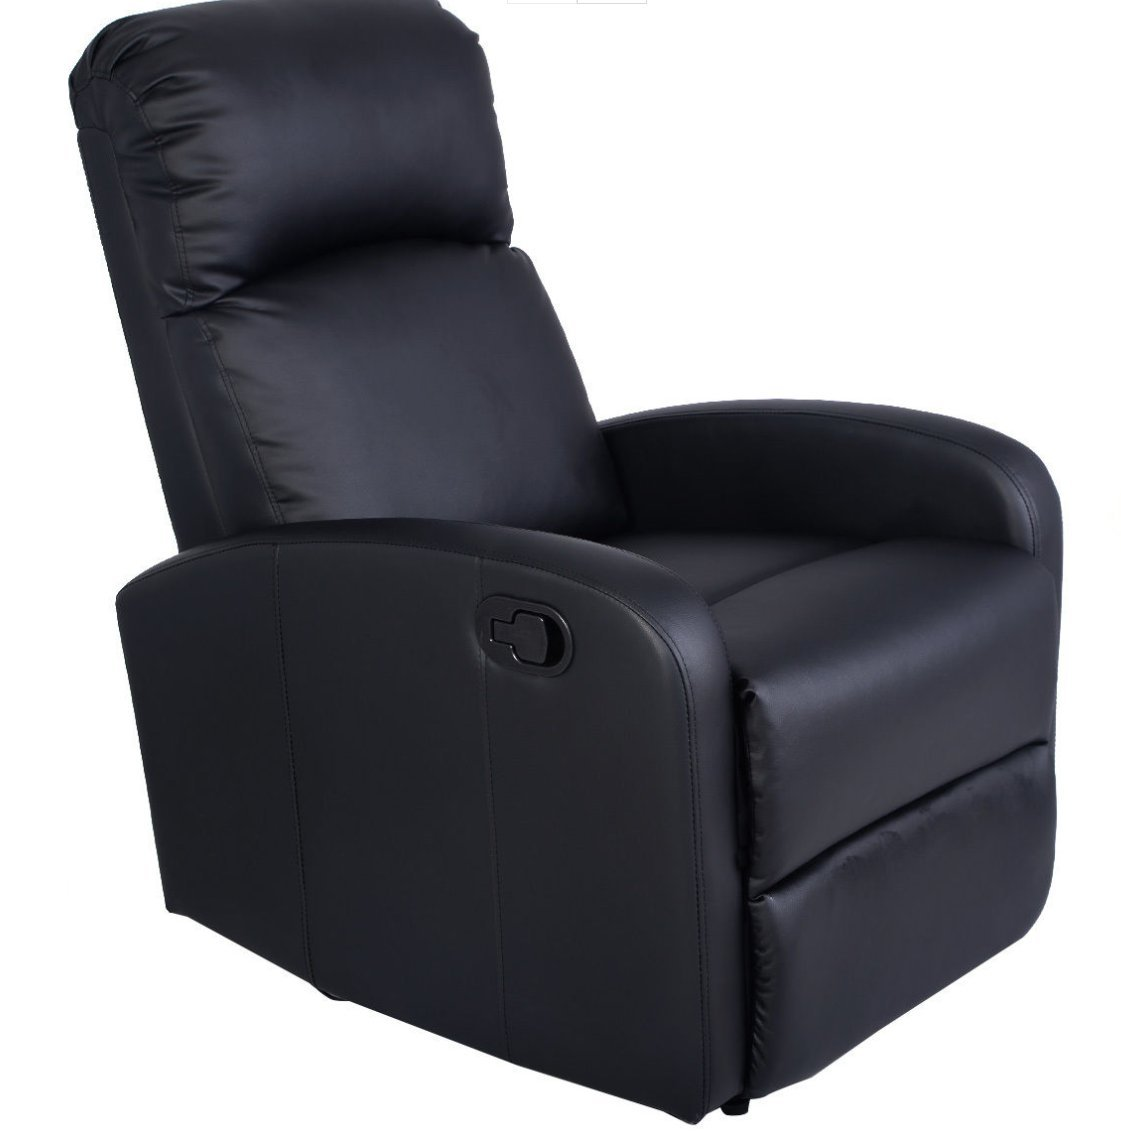 hei sale for recliner chairs tif day recliners g n memorial leather op under from wid cheap usm